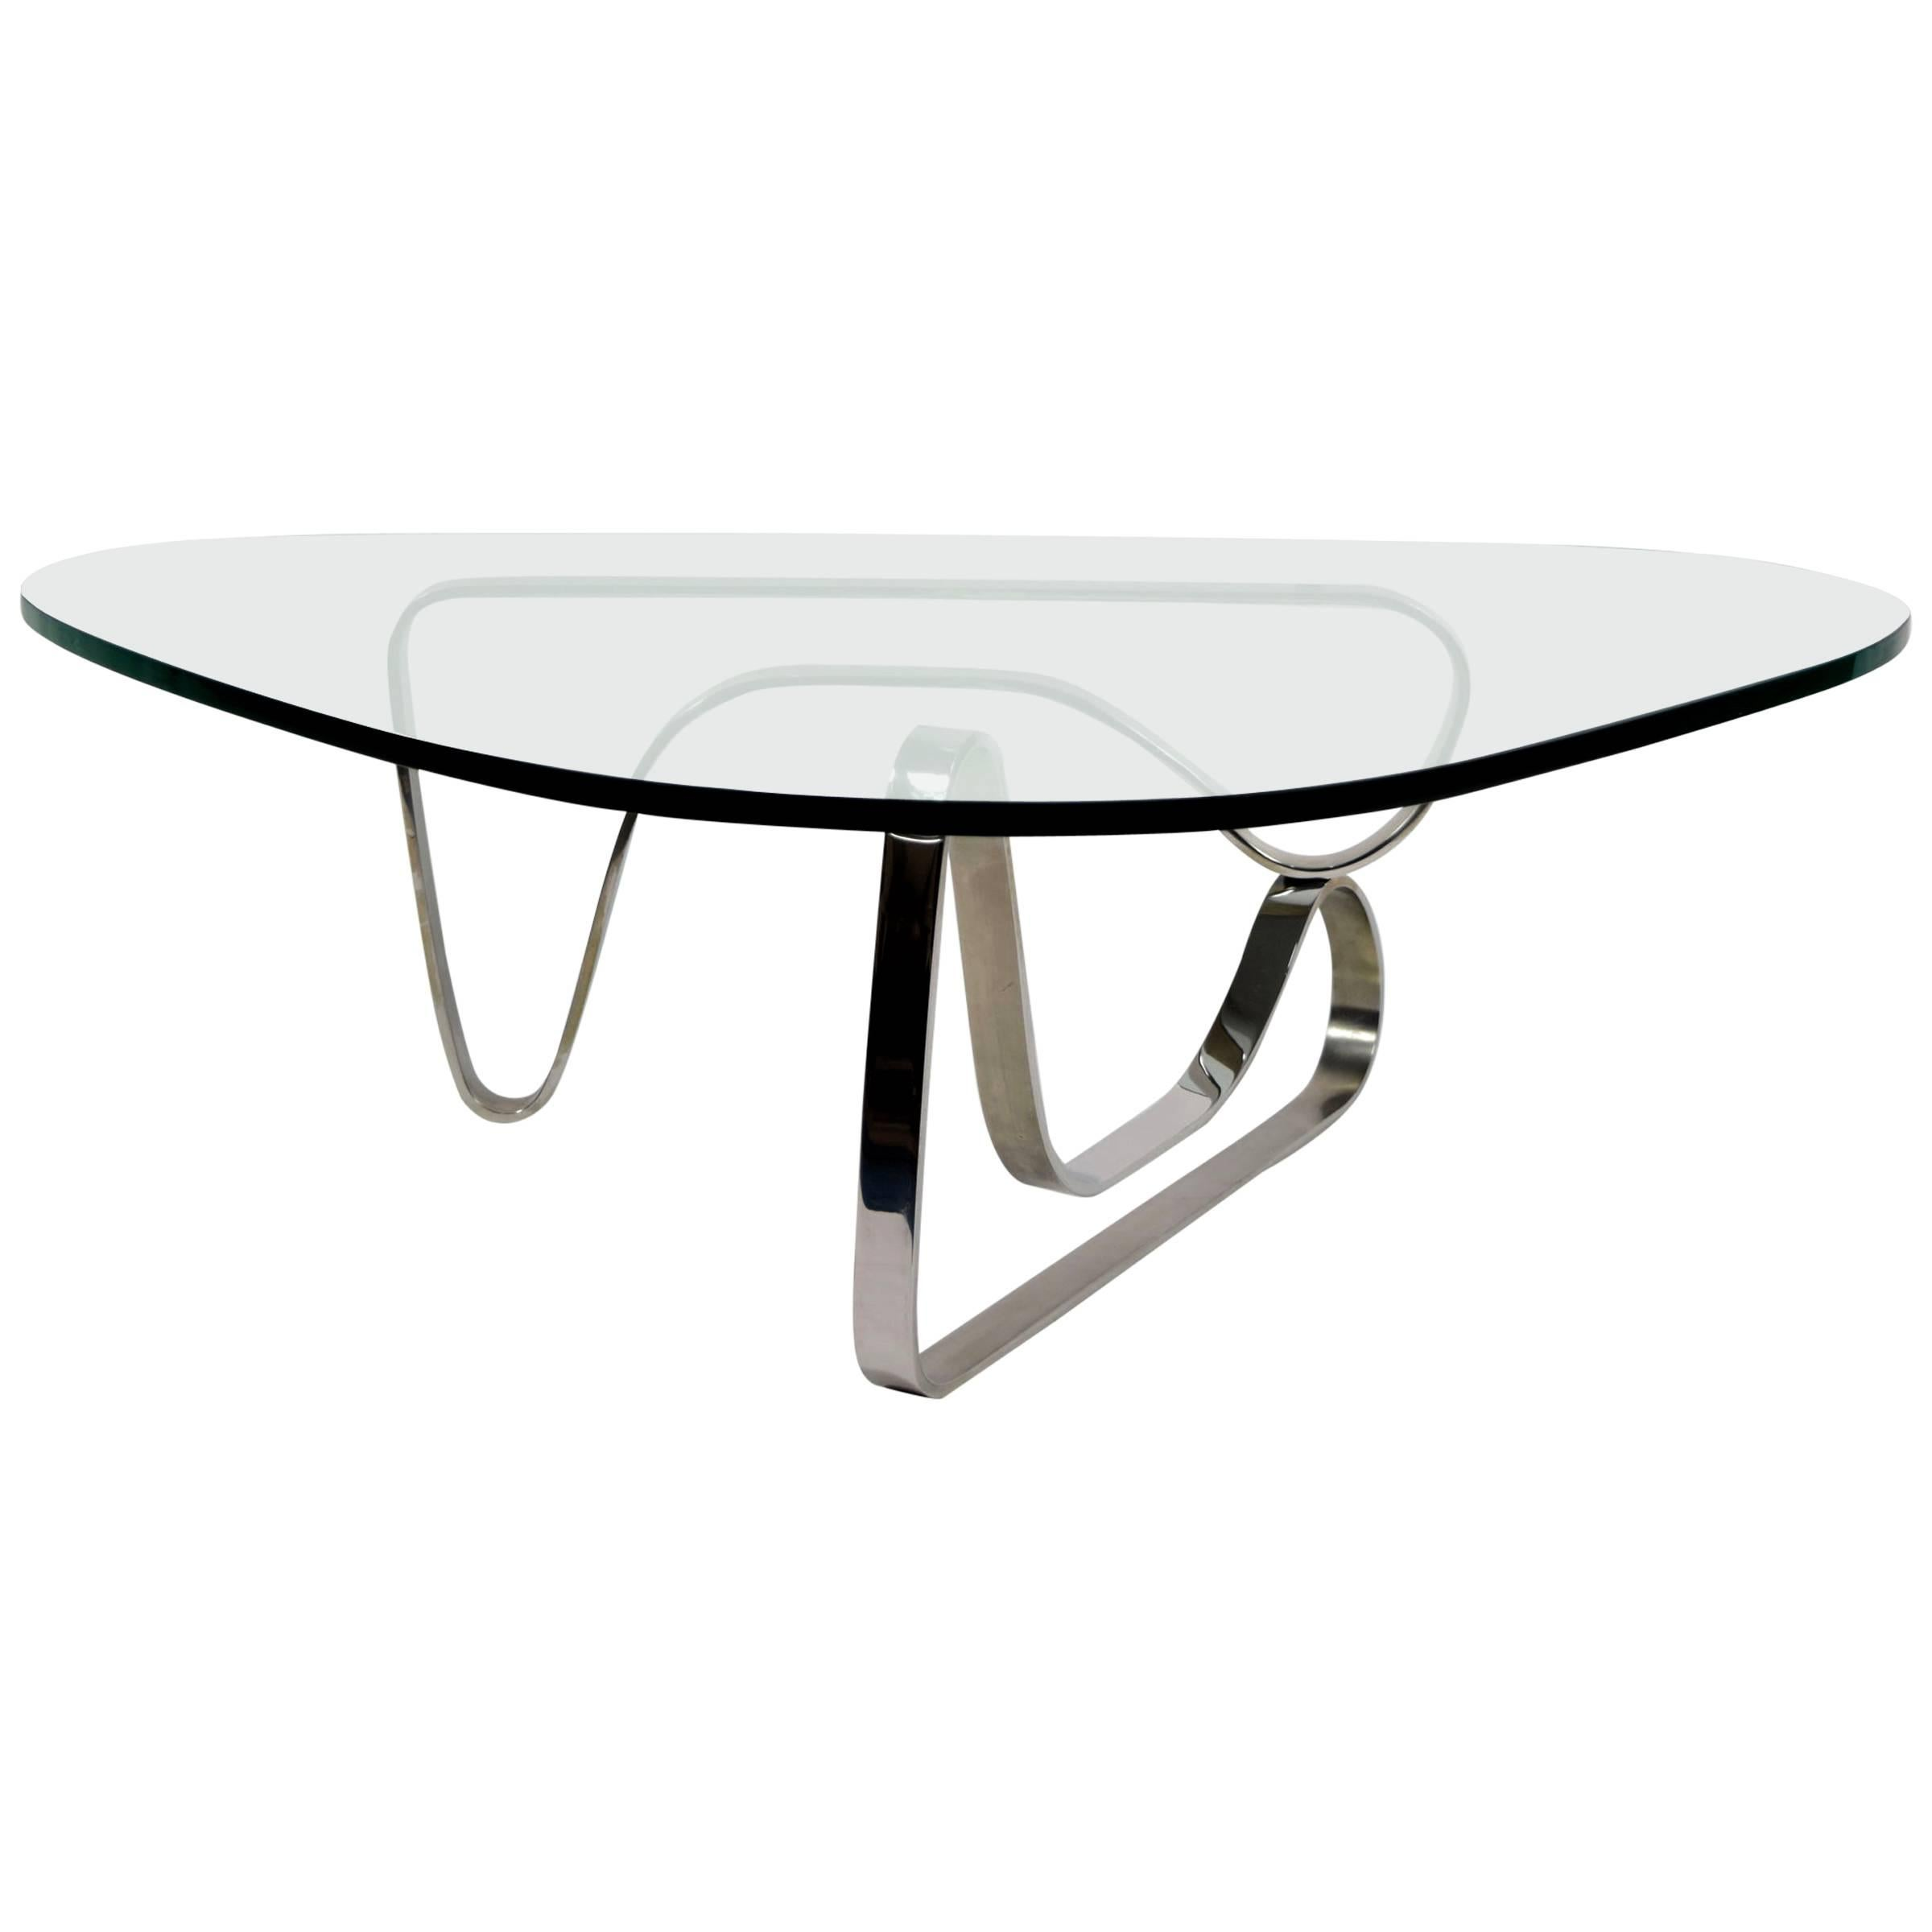 Noguchi Table Noguchi Style Coffee Table With Stainless Steel Base